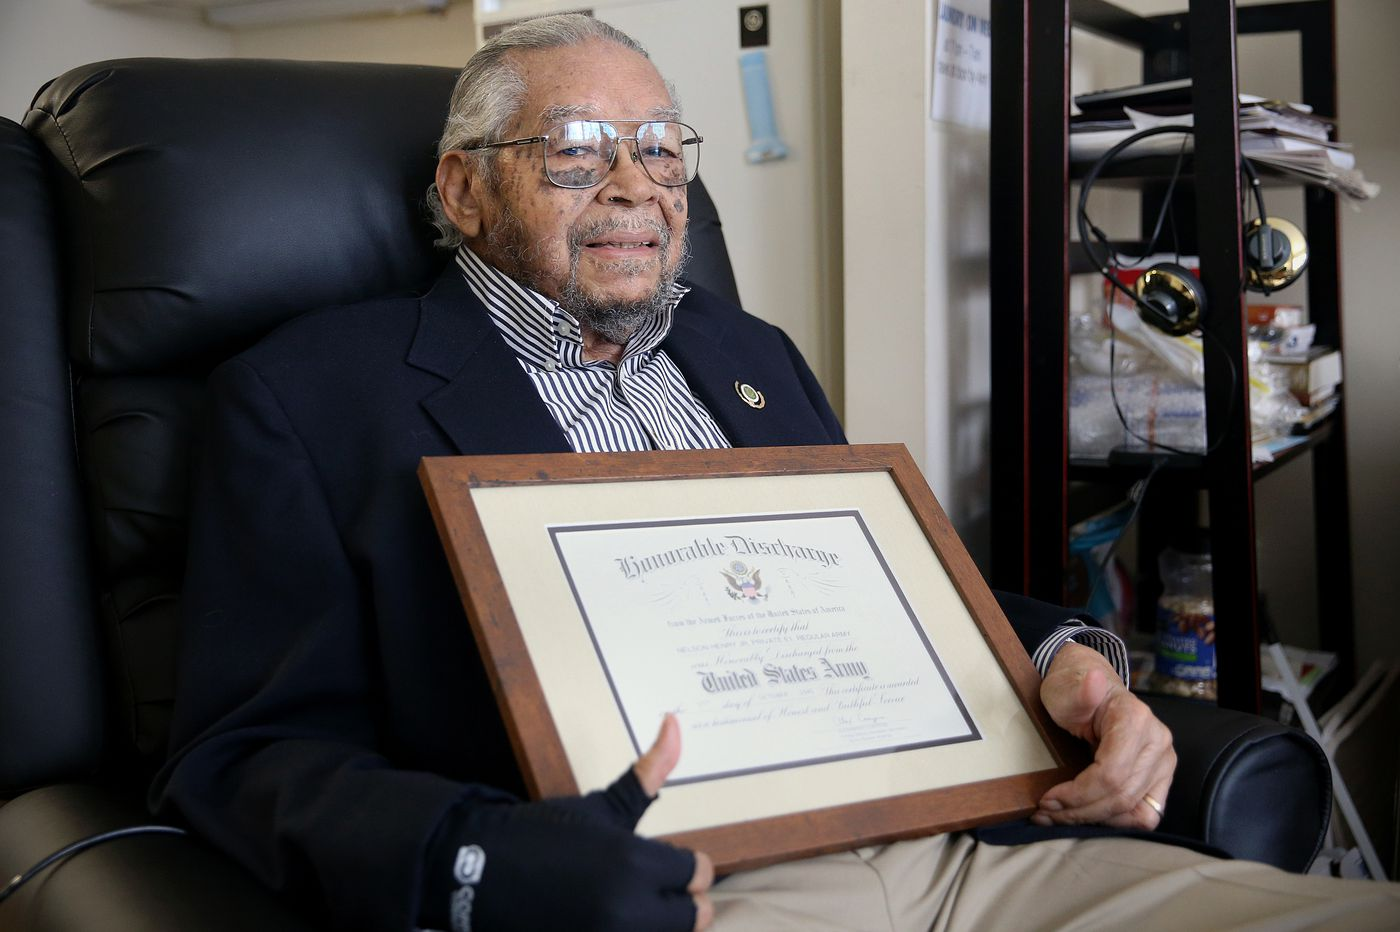 A Philly WWII veteran just got an honorable discharge from the Army, 75 years after being kicked out because he was black